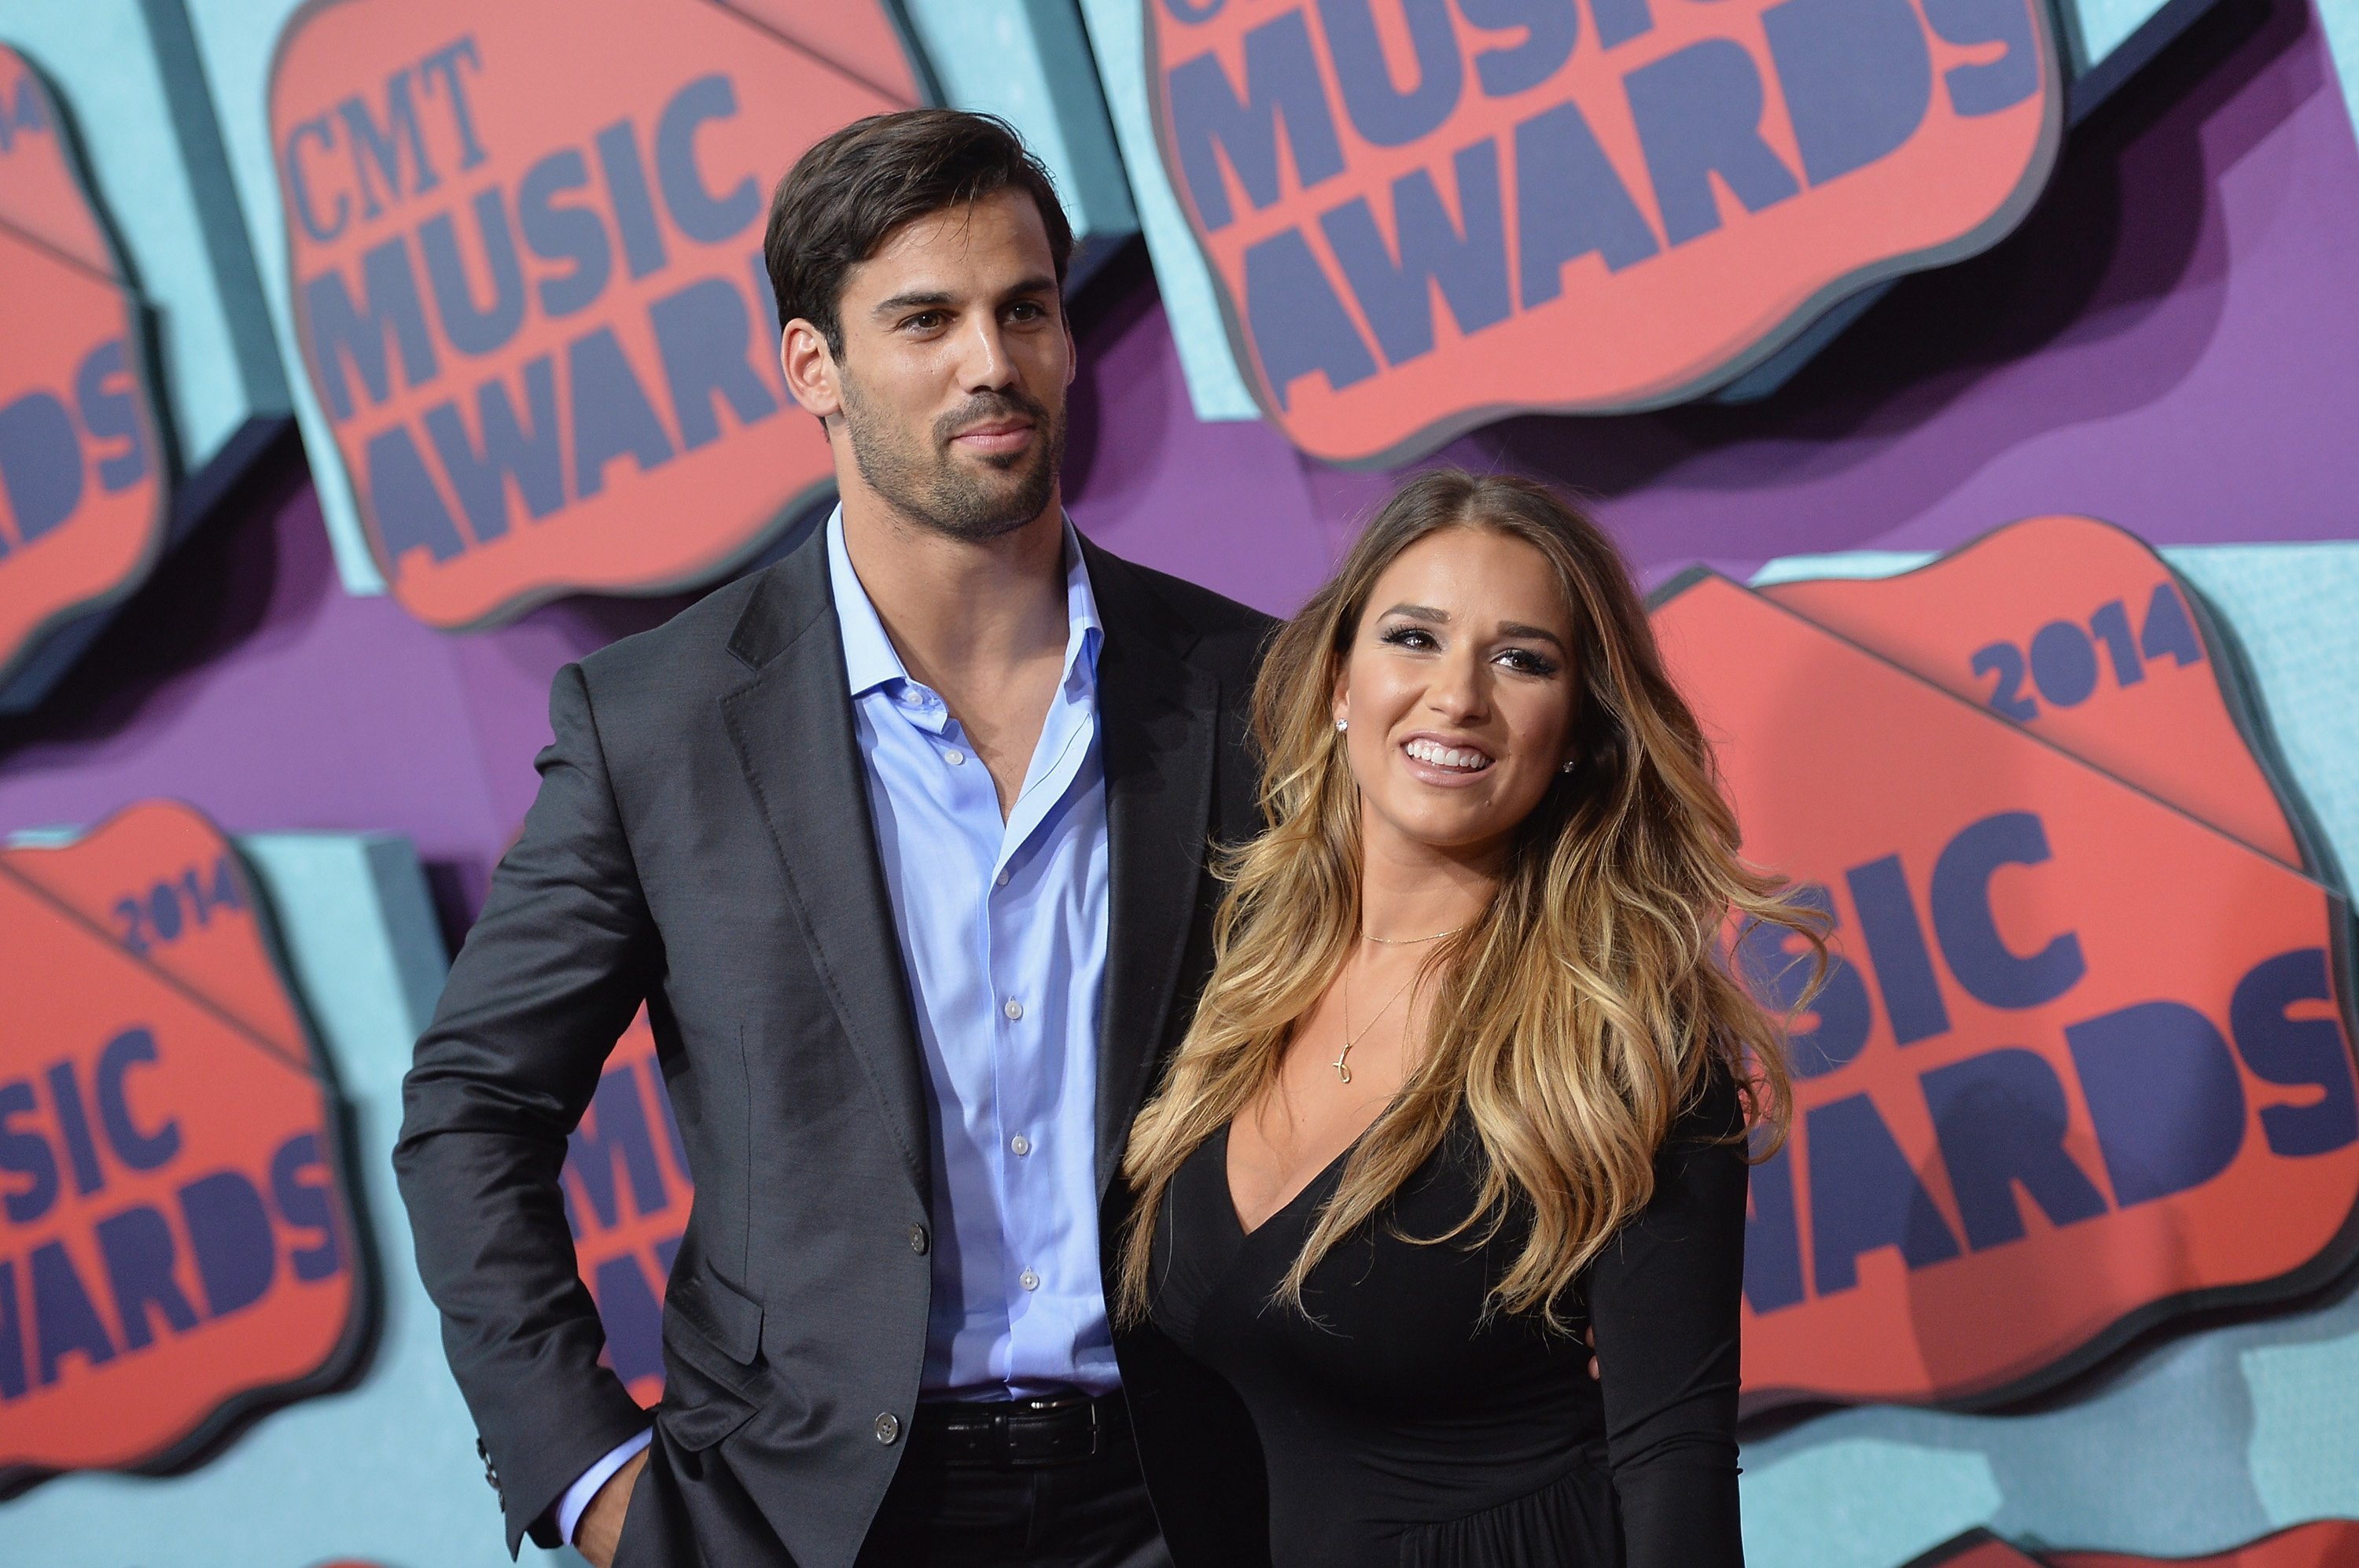 Jessie James decker and her husband, Eric Decker pictured attending the CMT Music Awards, 2014, Tennessee. | Photo: Getty Images.